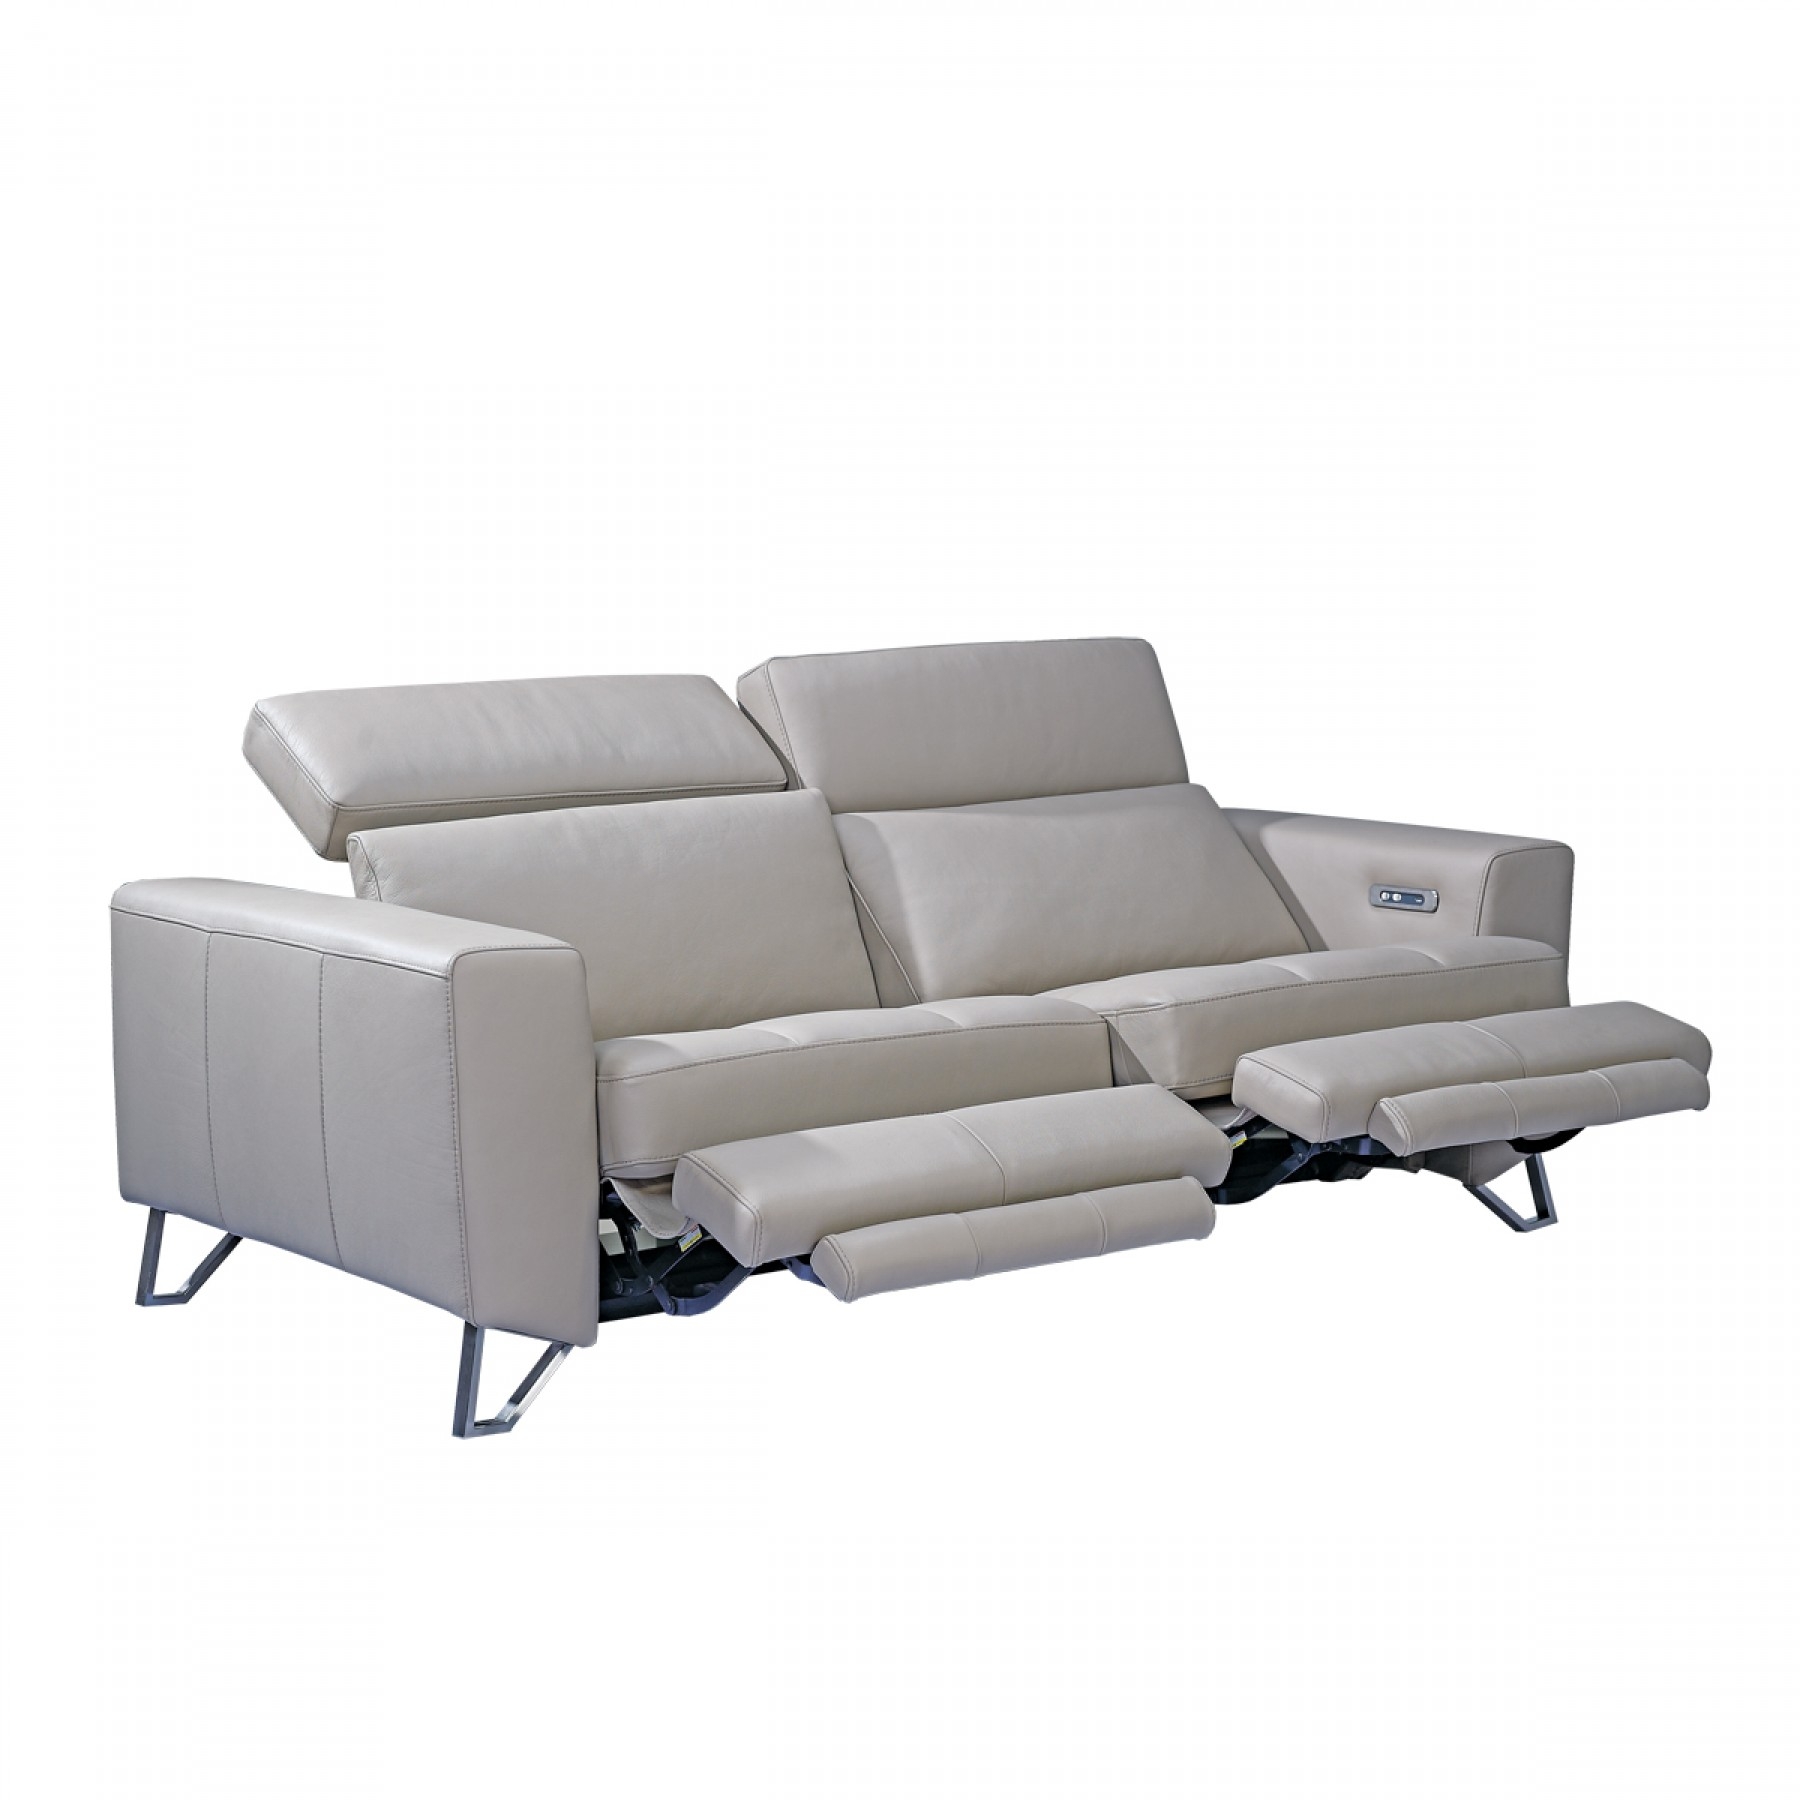 Aperto 3 Seater Recliner Sofa Beyond Furniture